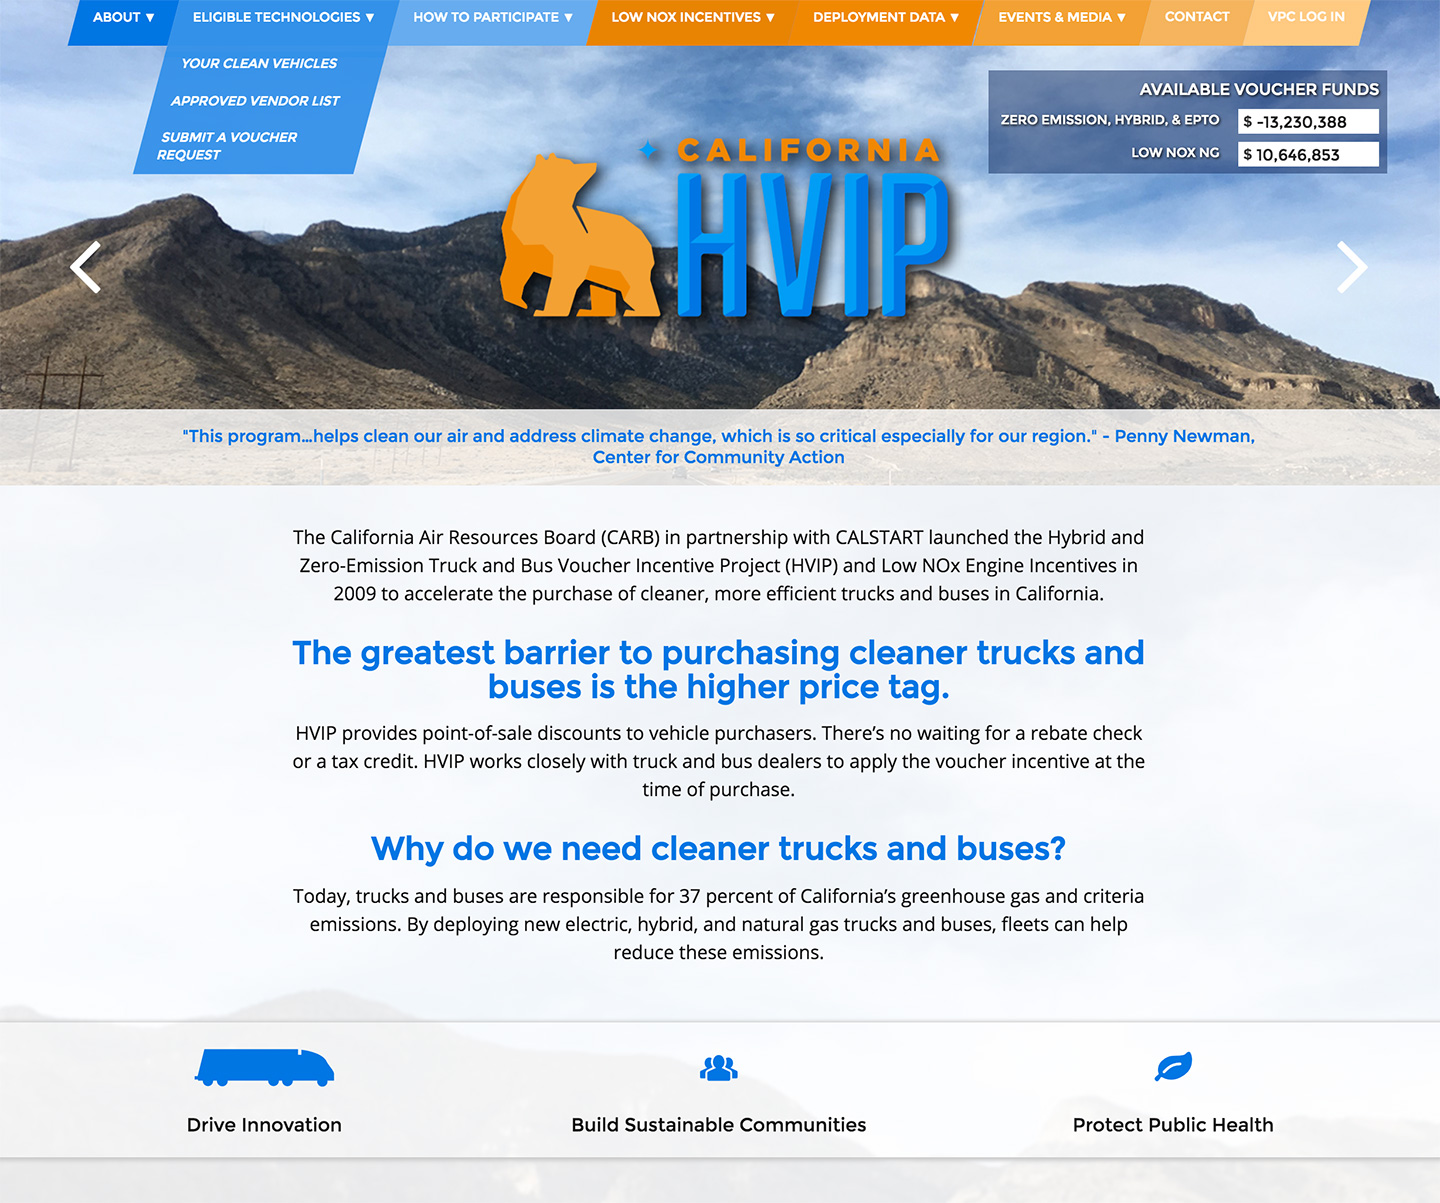 Clean Site for the California Heavy Duty Vehicle Incentive Program